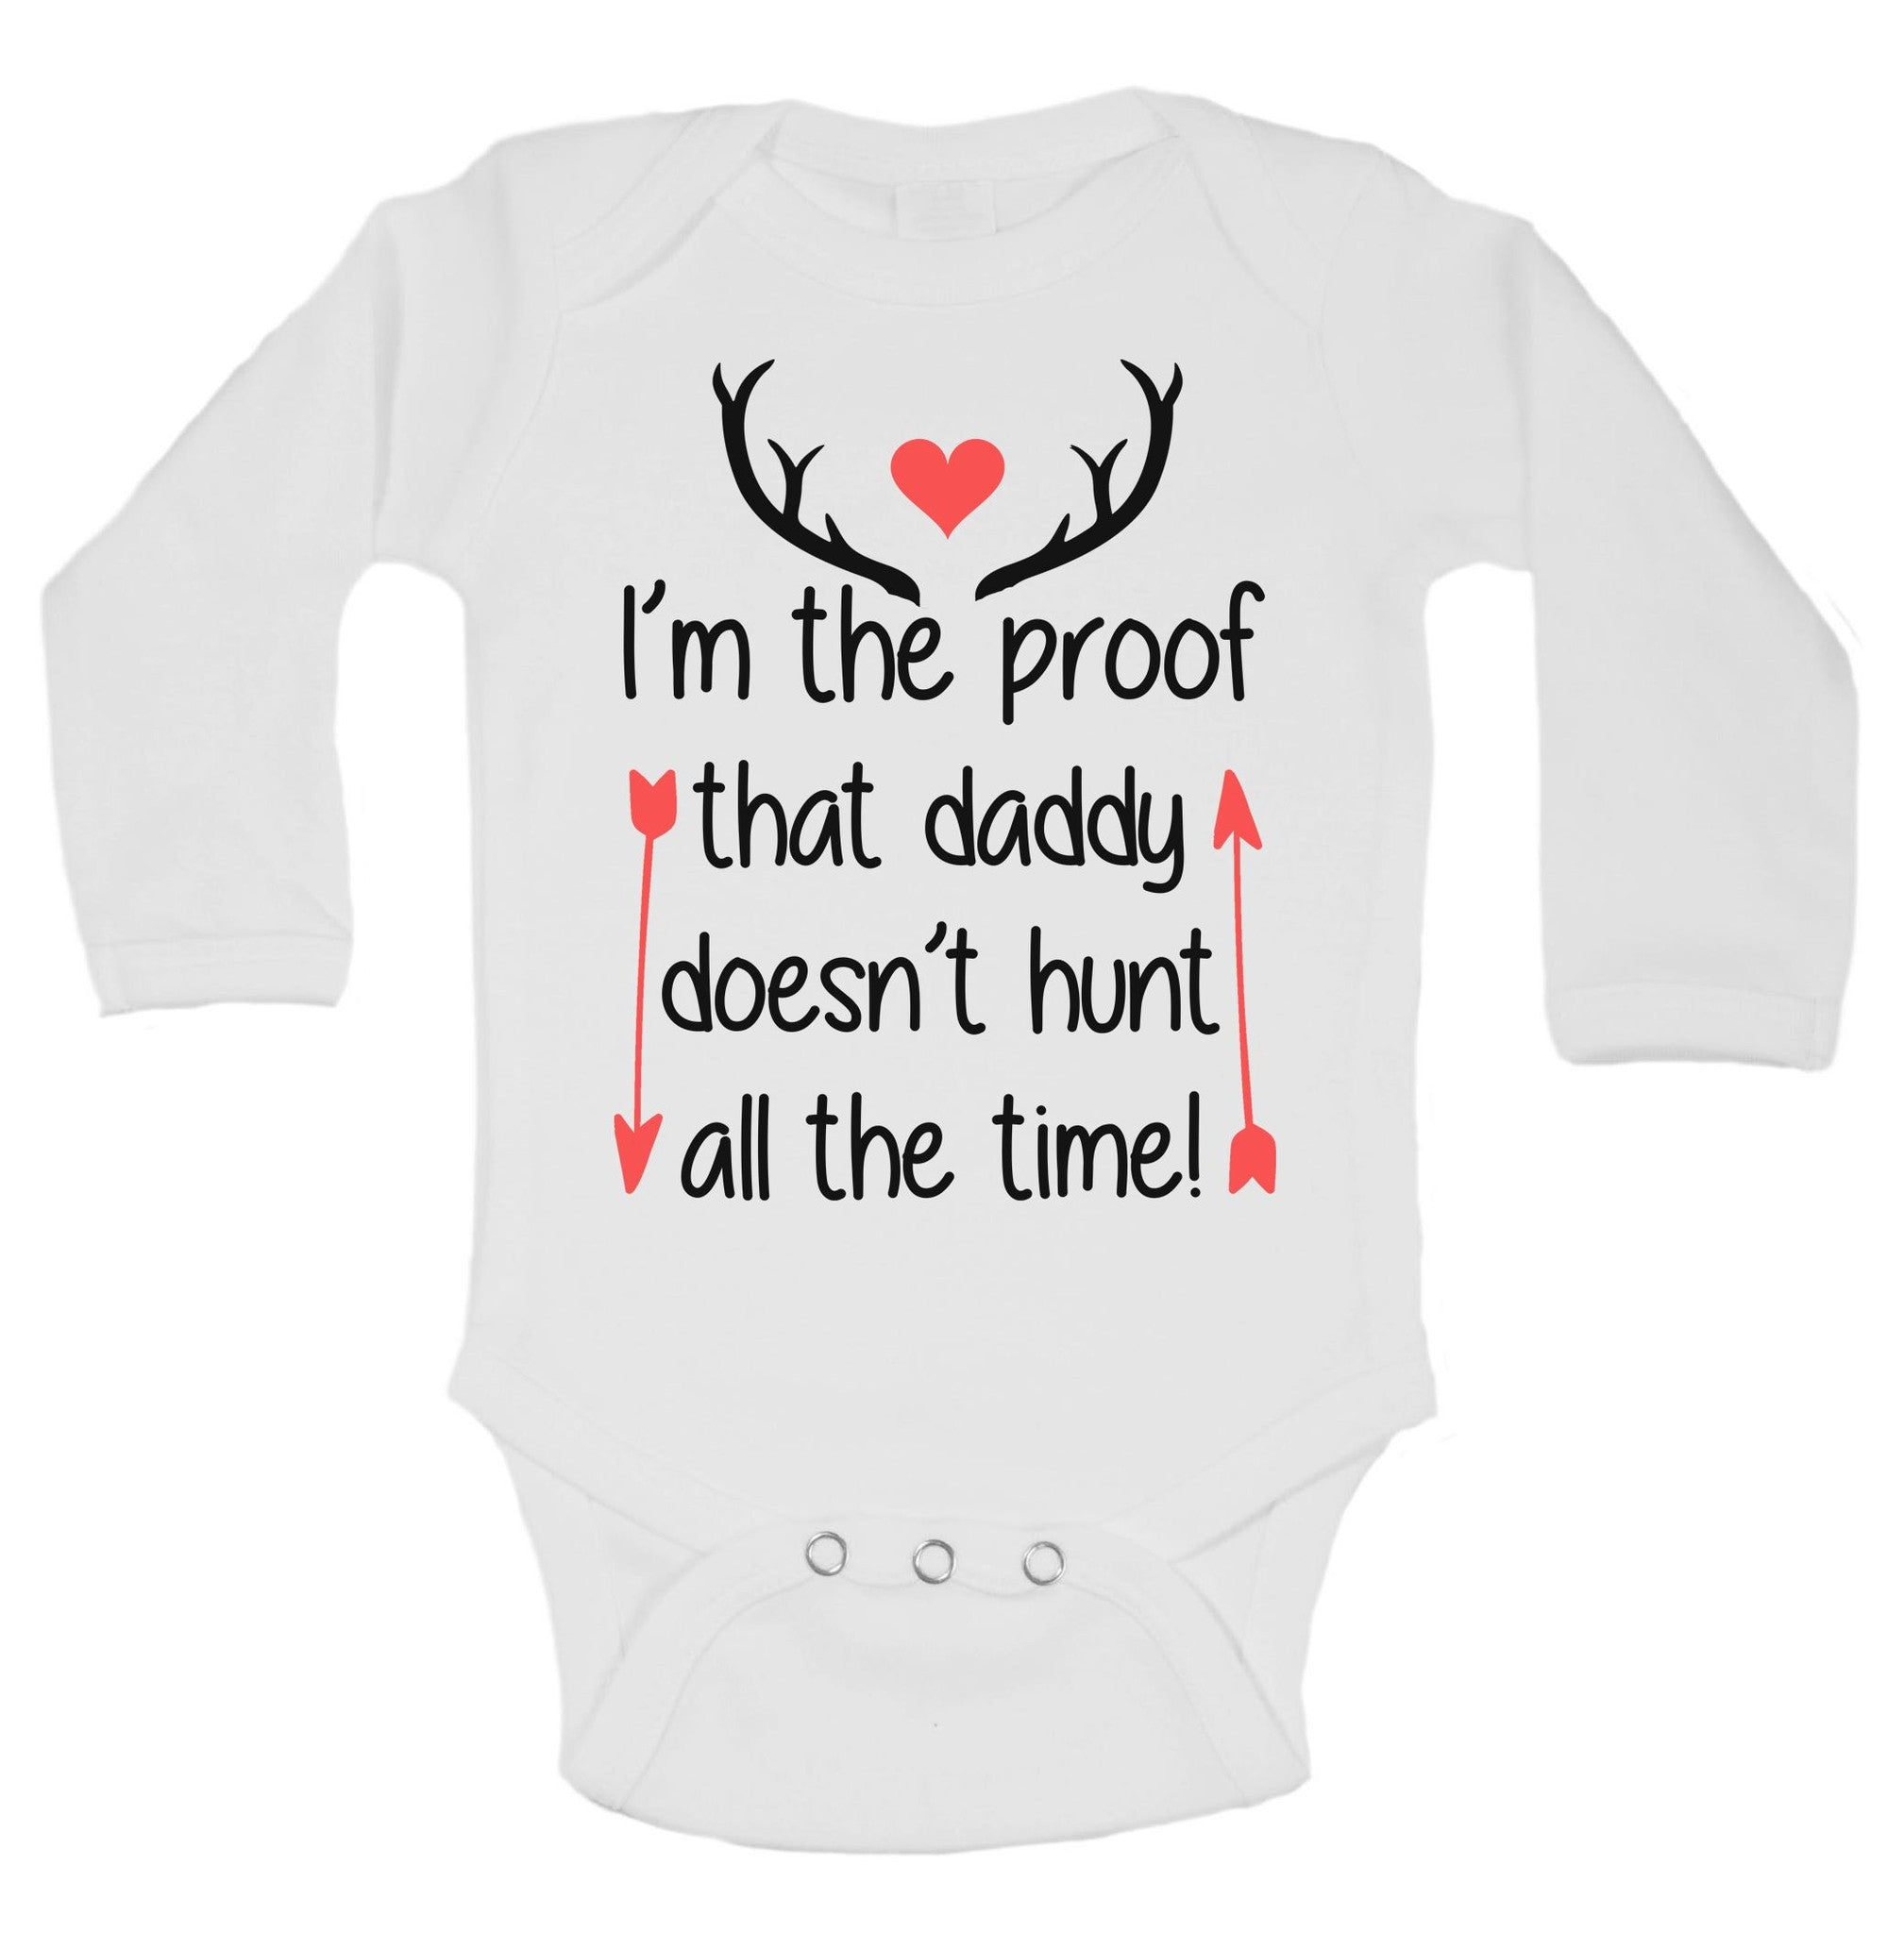 I'm The Proof That Daddy Doesn't Hunt All The Time! Funny Kids Onesie - B207 - Funny Shirts Tank Tops Burnouts and Triblends  - 1